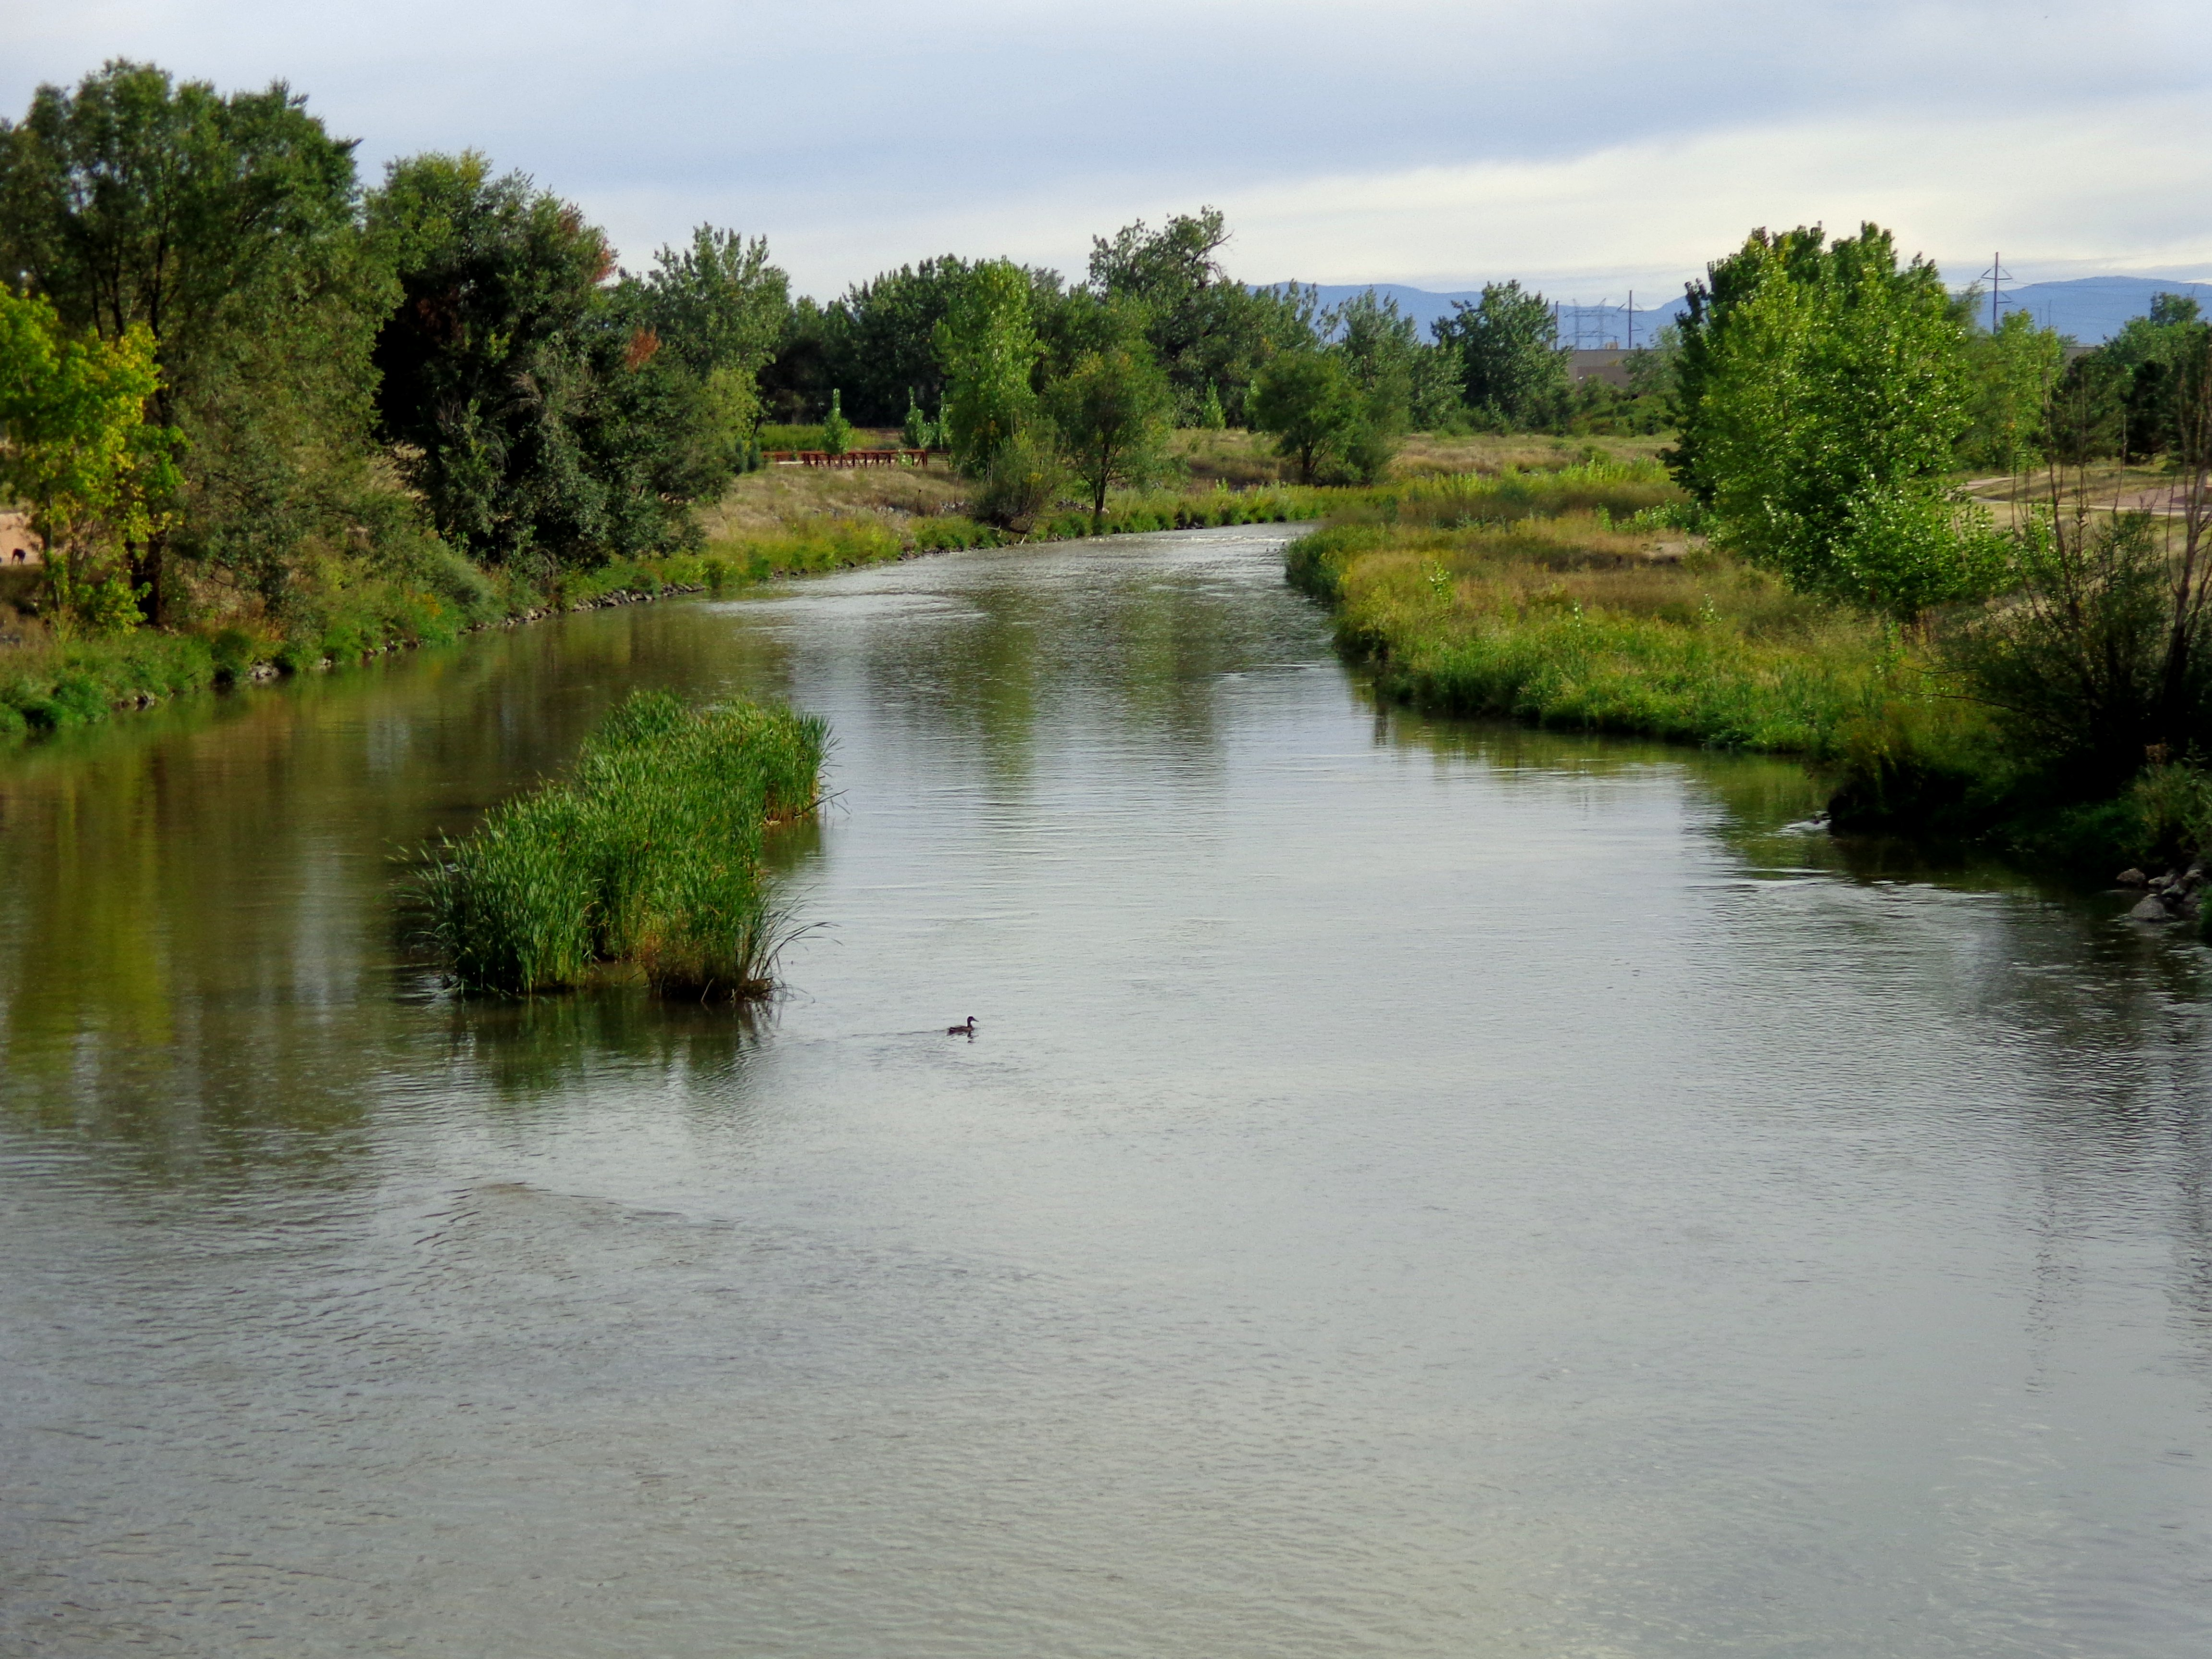 River with Duck Swimming Picture | Free Photograph ...